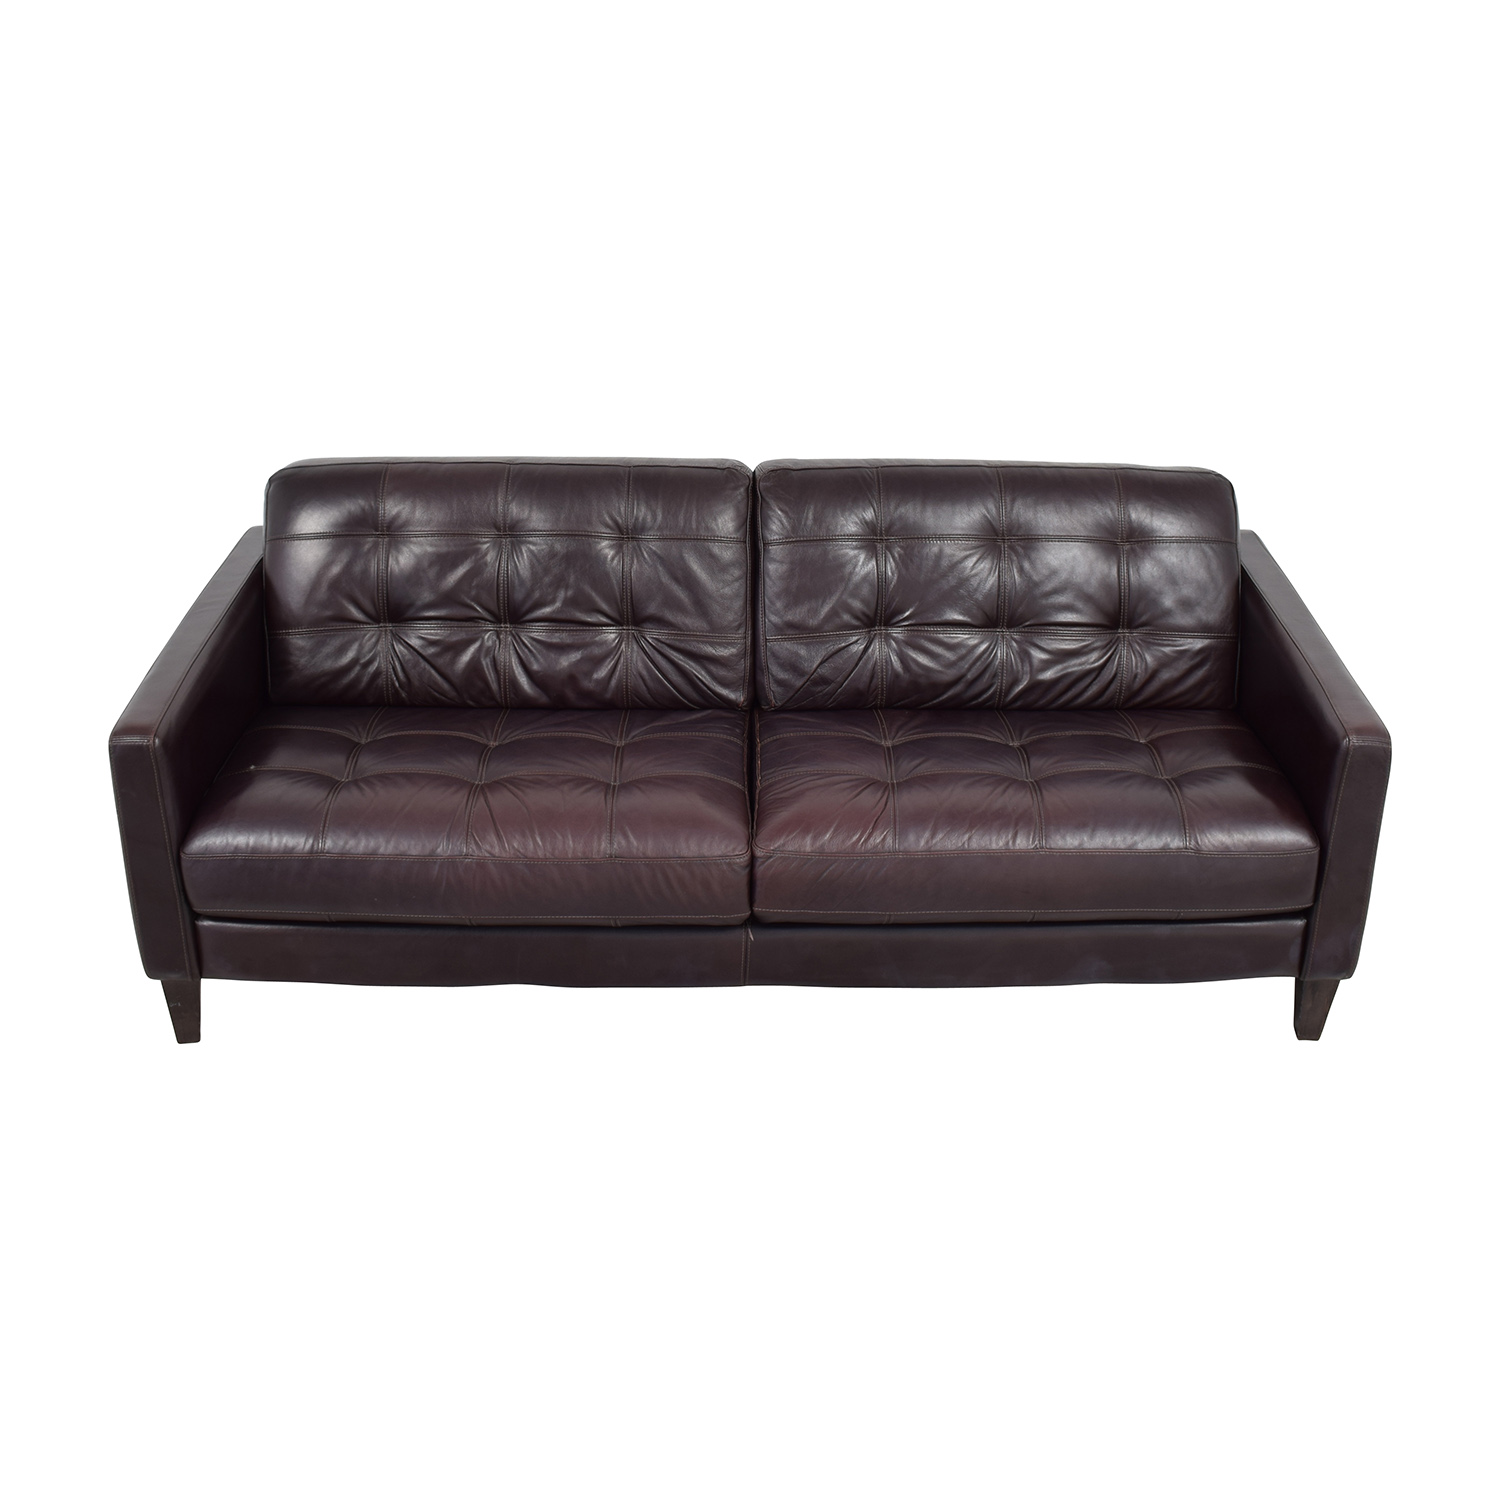 Macys Leather Chair Leather Sofa Macys Leather Couches And Sofas Macy S Thesofa